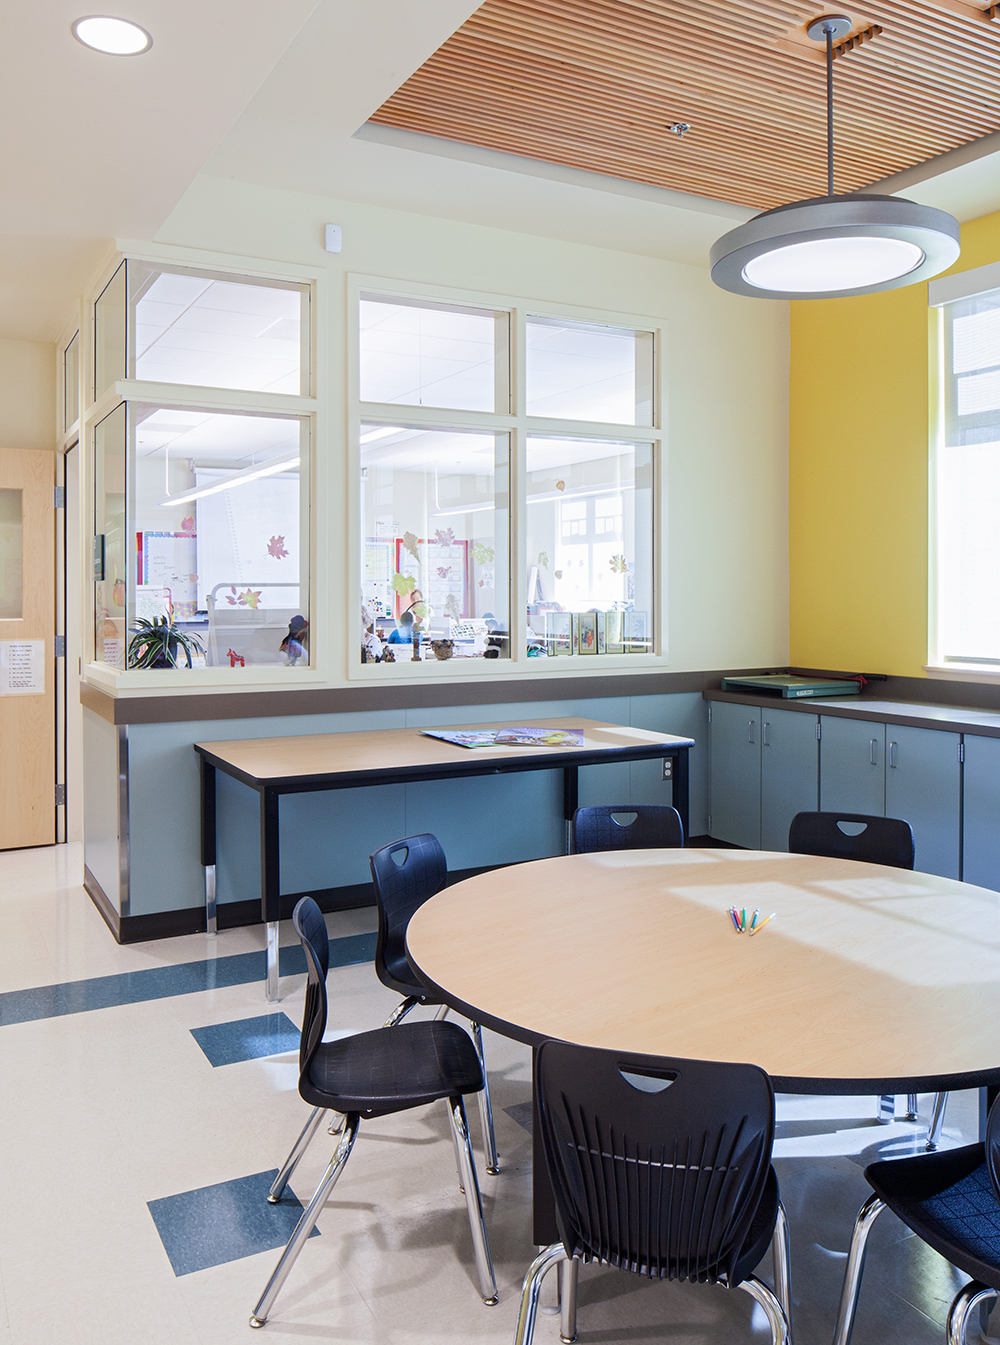 Broadway pendants in an education lighting design, seen here above a classroom table.